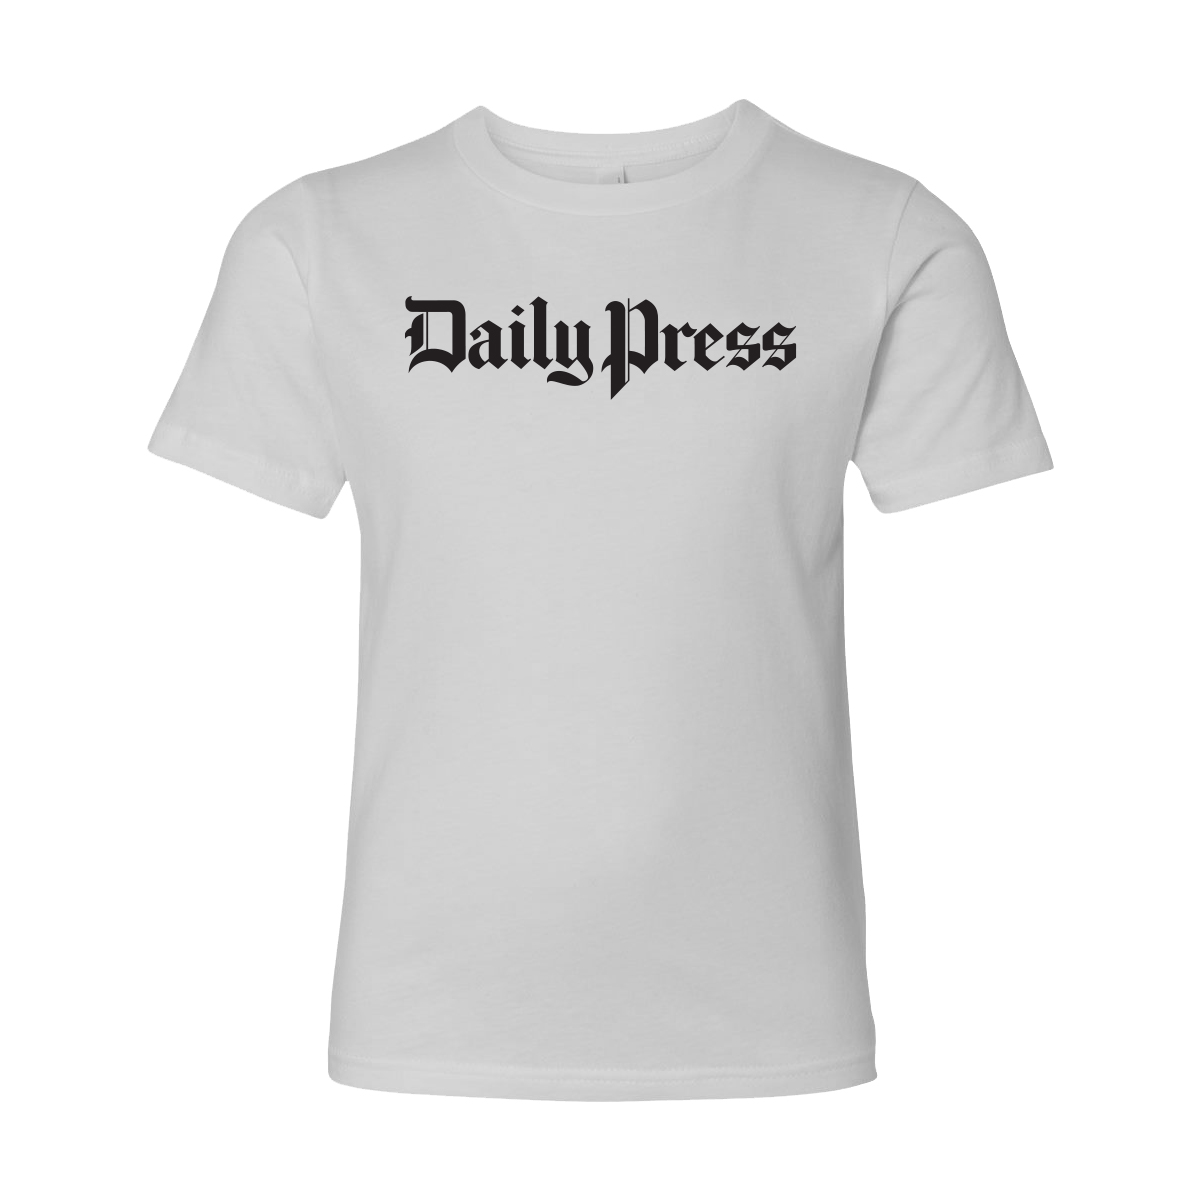 Daily Press Youth Shirt